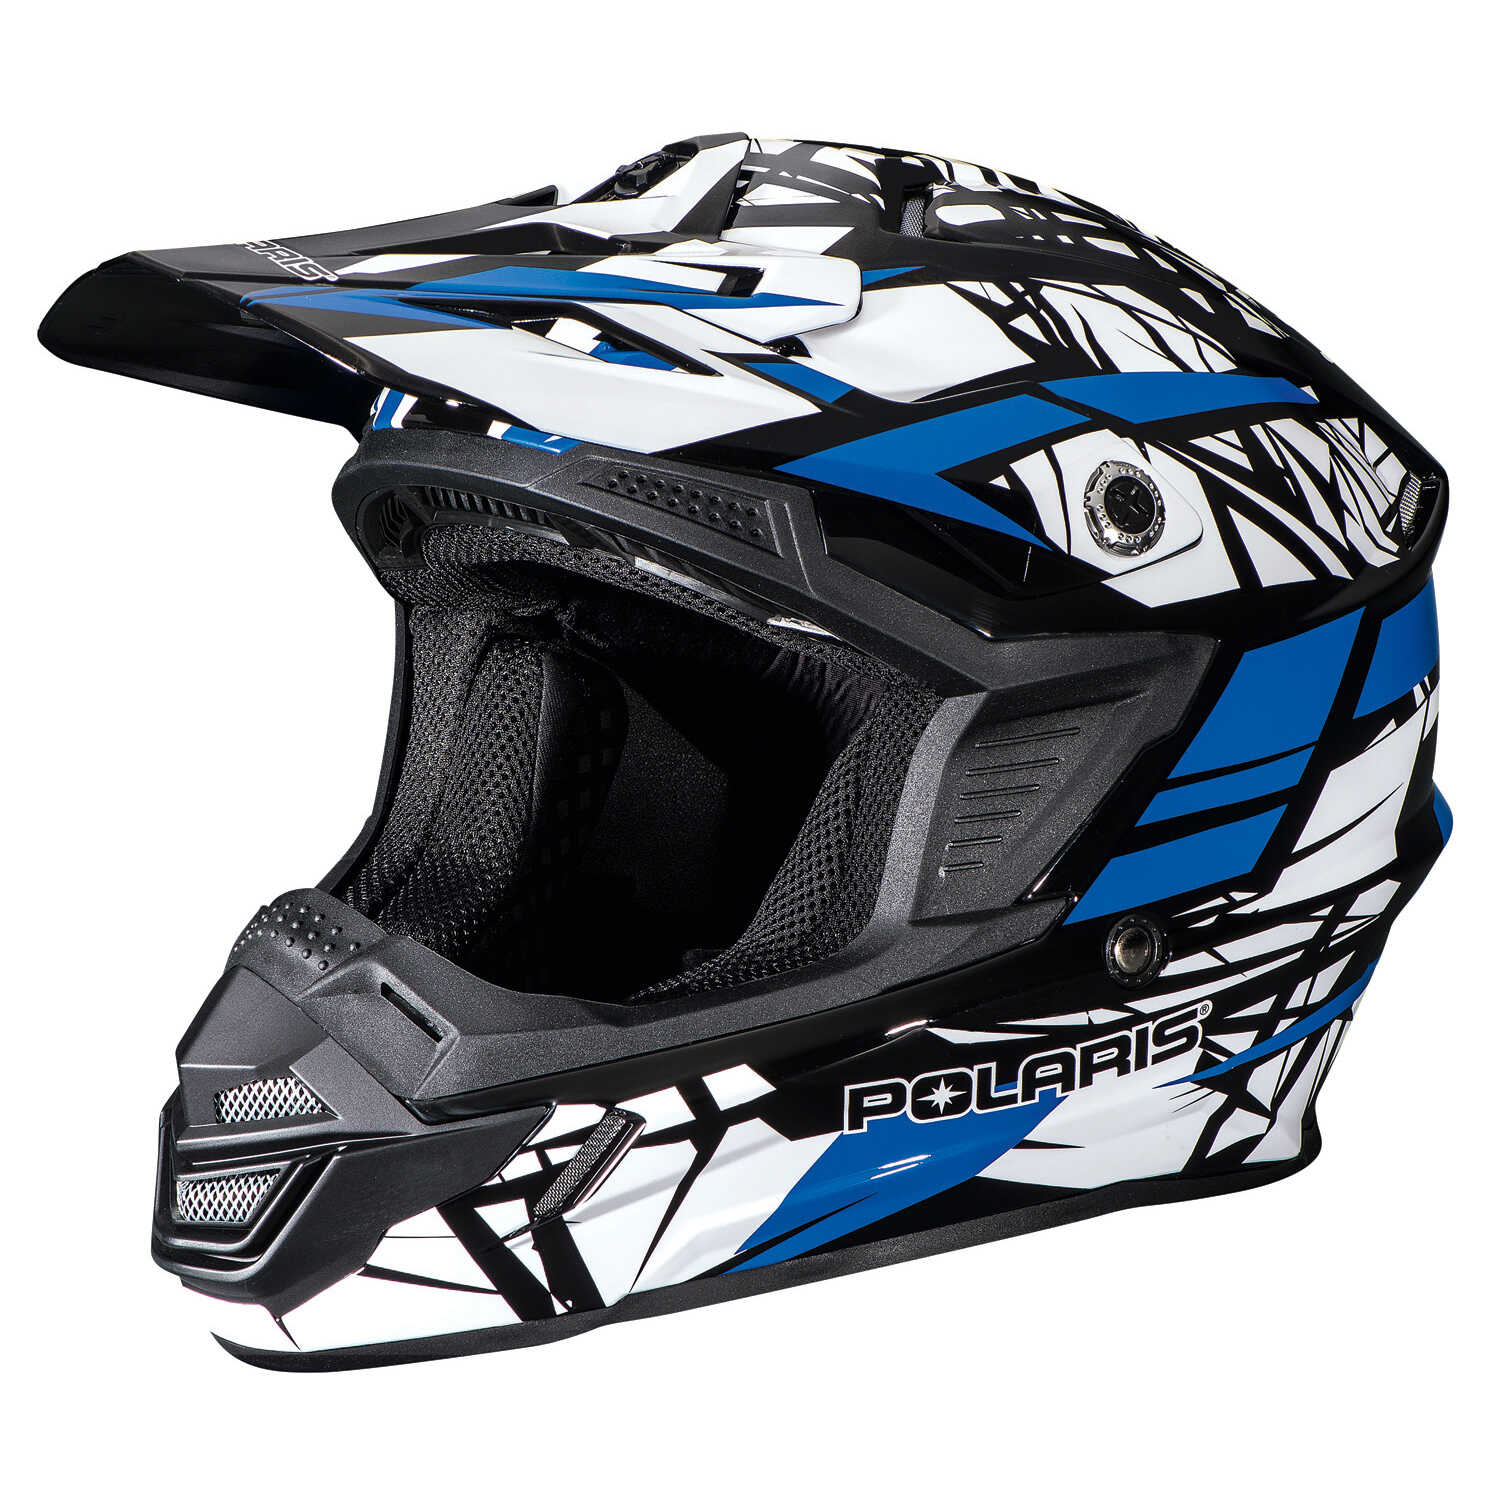 Tenacity Adult Moto Helmet with Removable Liner, Blue